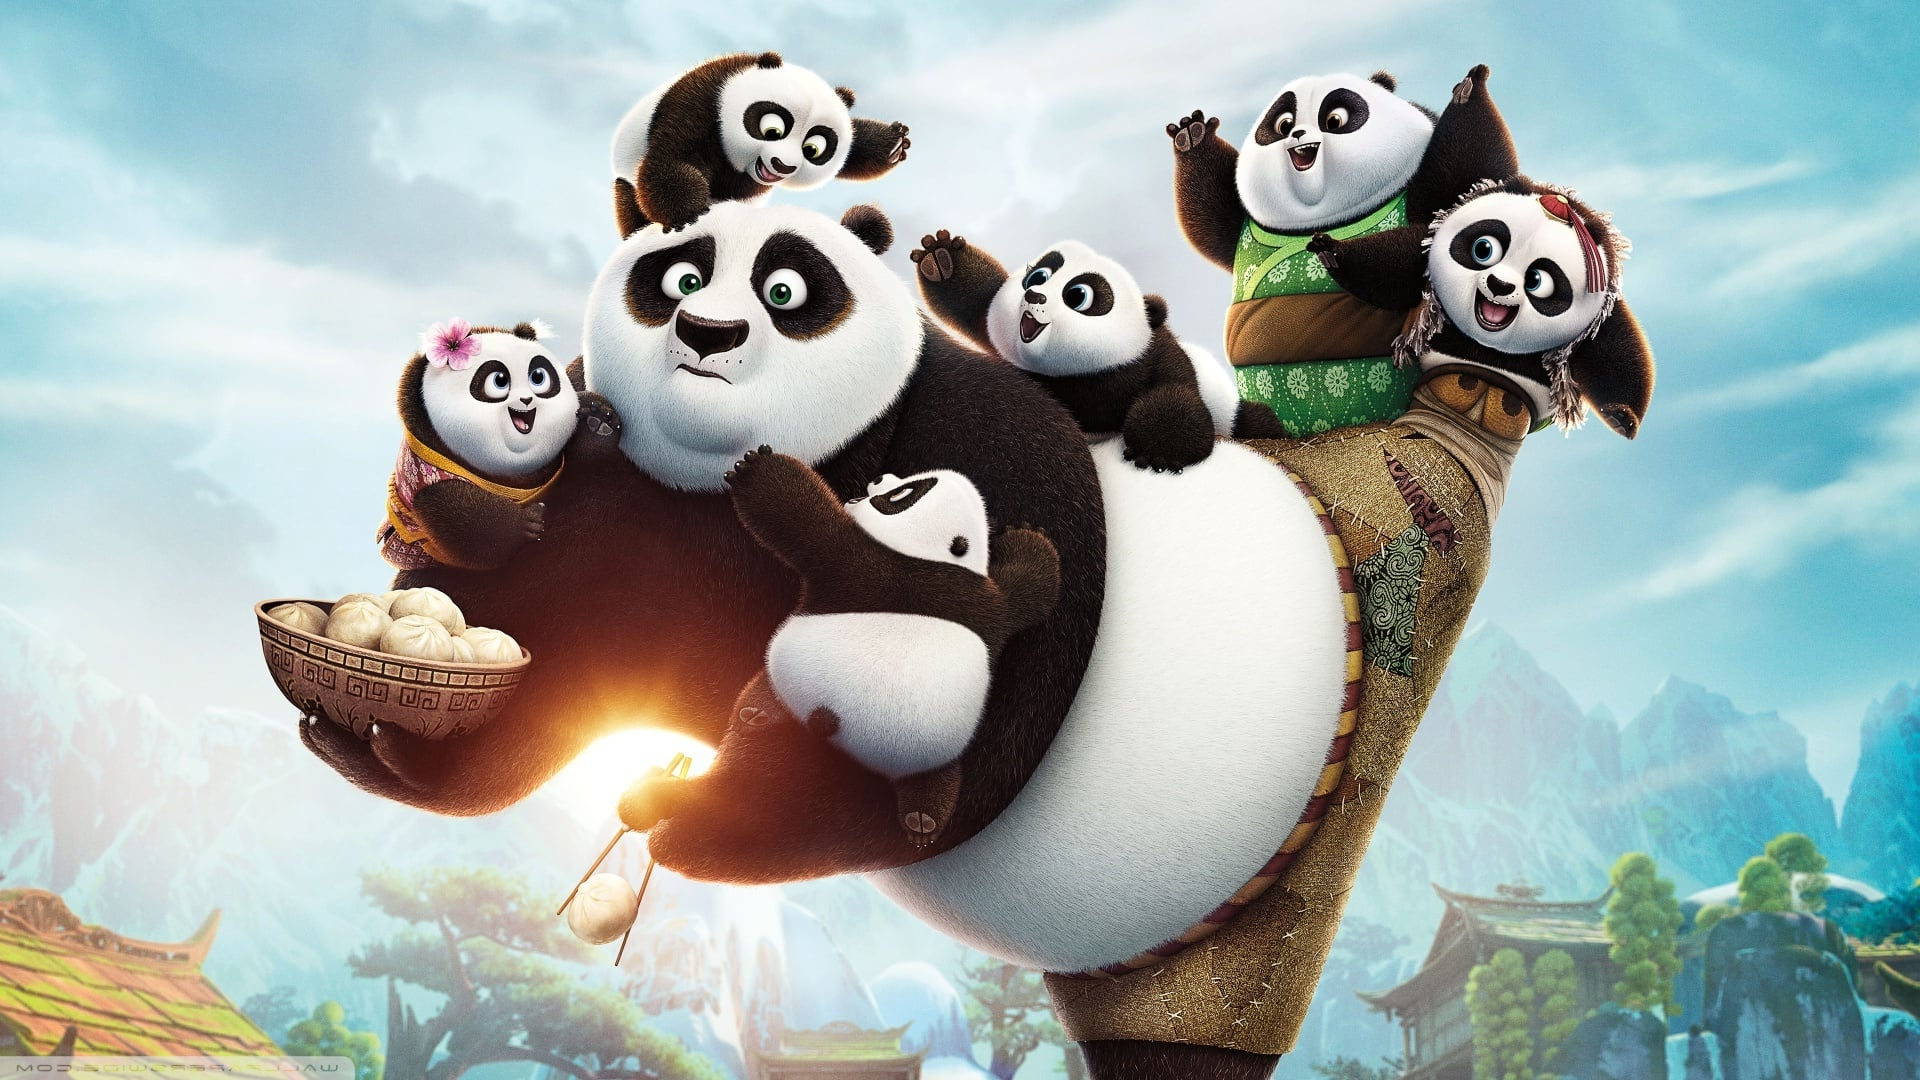 kungfu panda Kung fu panda is a 2008 animated film about an obese and clumsy panda who finds himself designated the prophesied dragon warrior, much to.